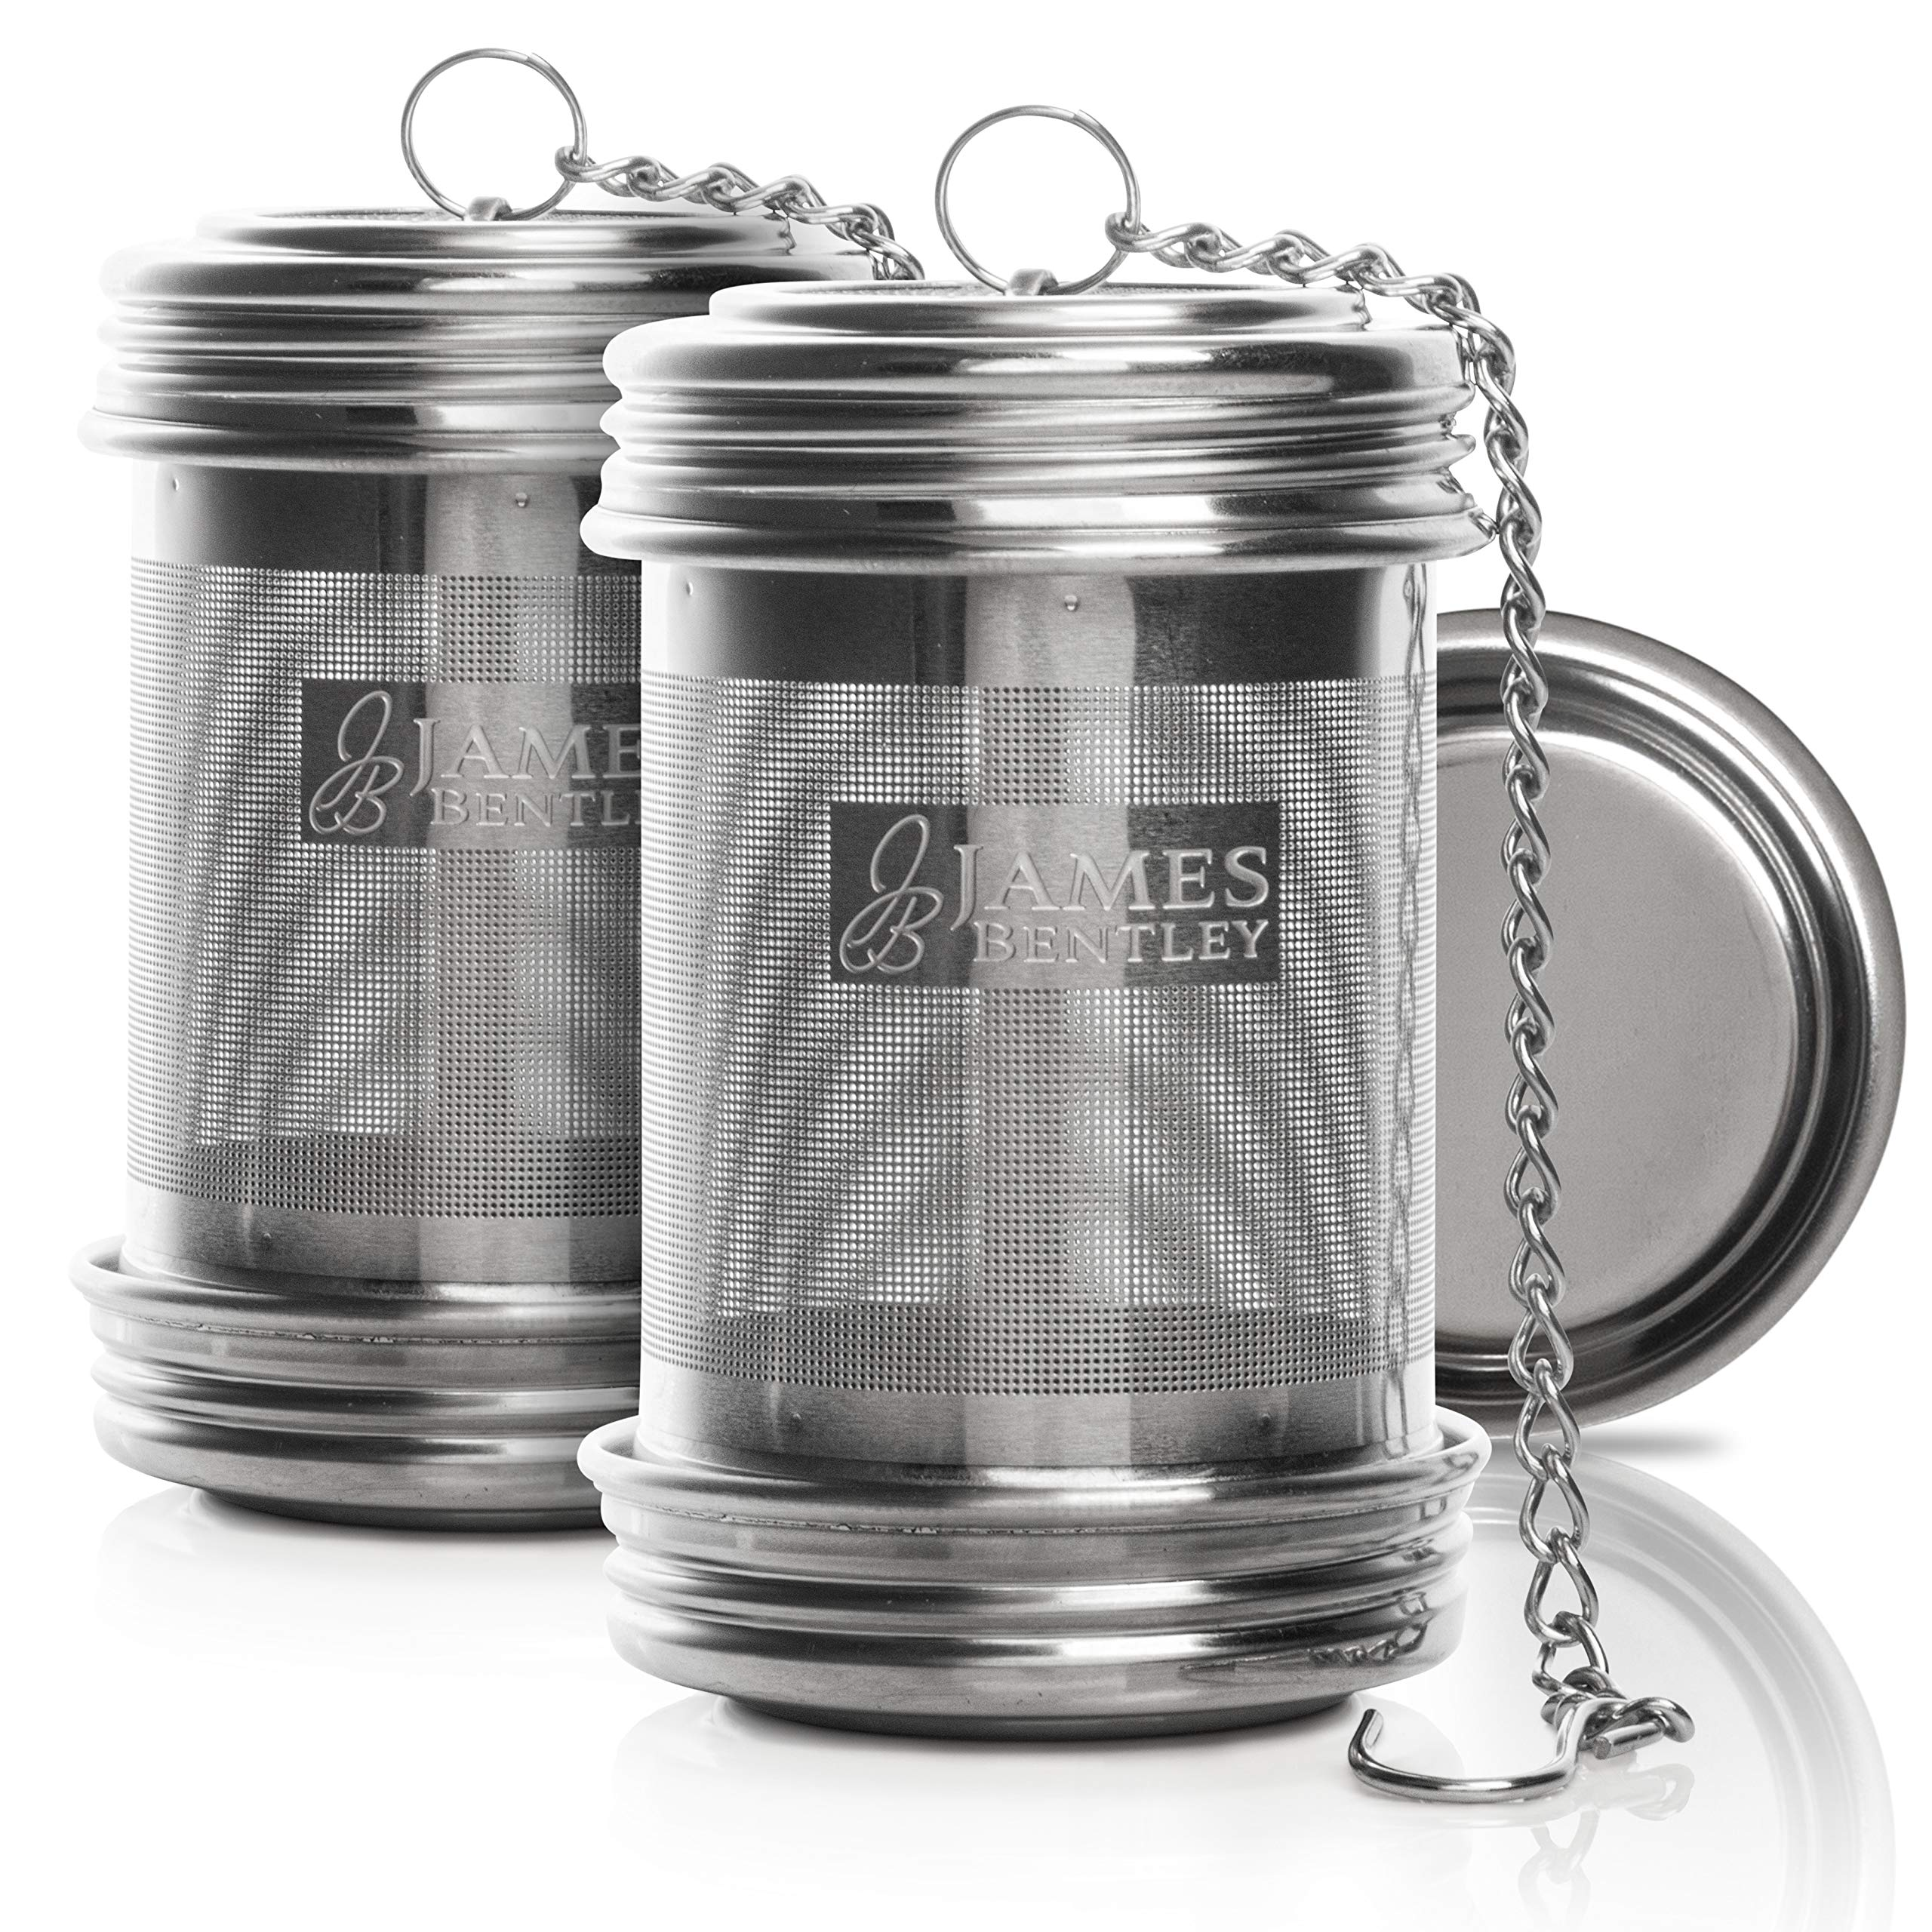 Tea ball Infuser for loose Tea 2 PACK Stainless Steel filters trainer with Double Screw Threaded Connection for Easy Cleaning Extra Fine Mesh Tea ball Infuser Brew Tea, Spices & Seasonings by JAMES BENTLEY